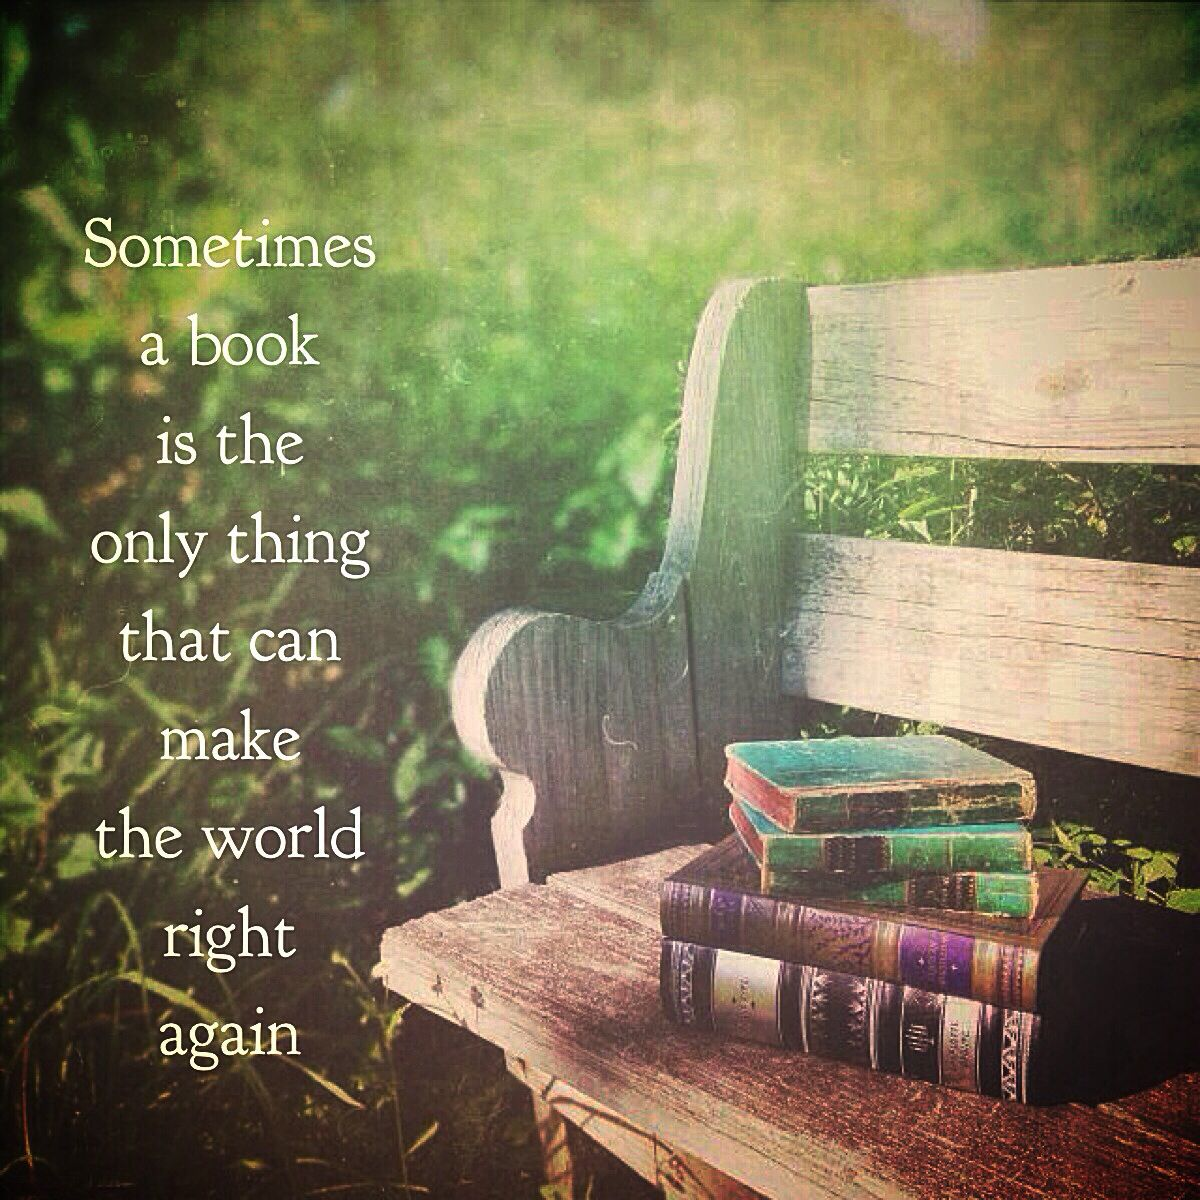 Sometimes a book is the only thing that can make the world right again.